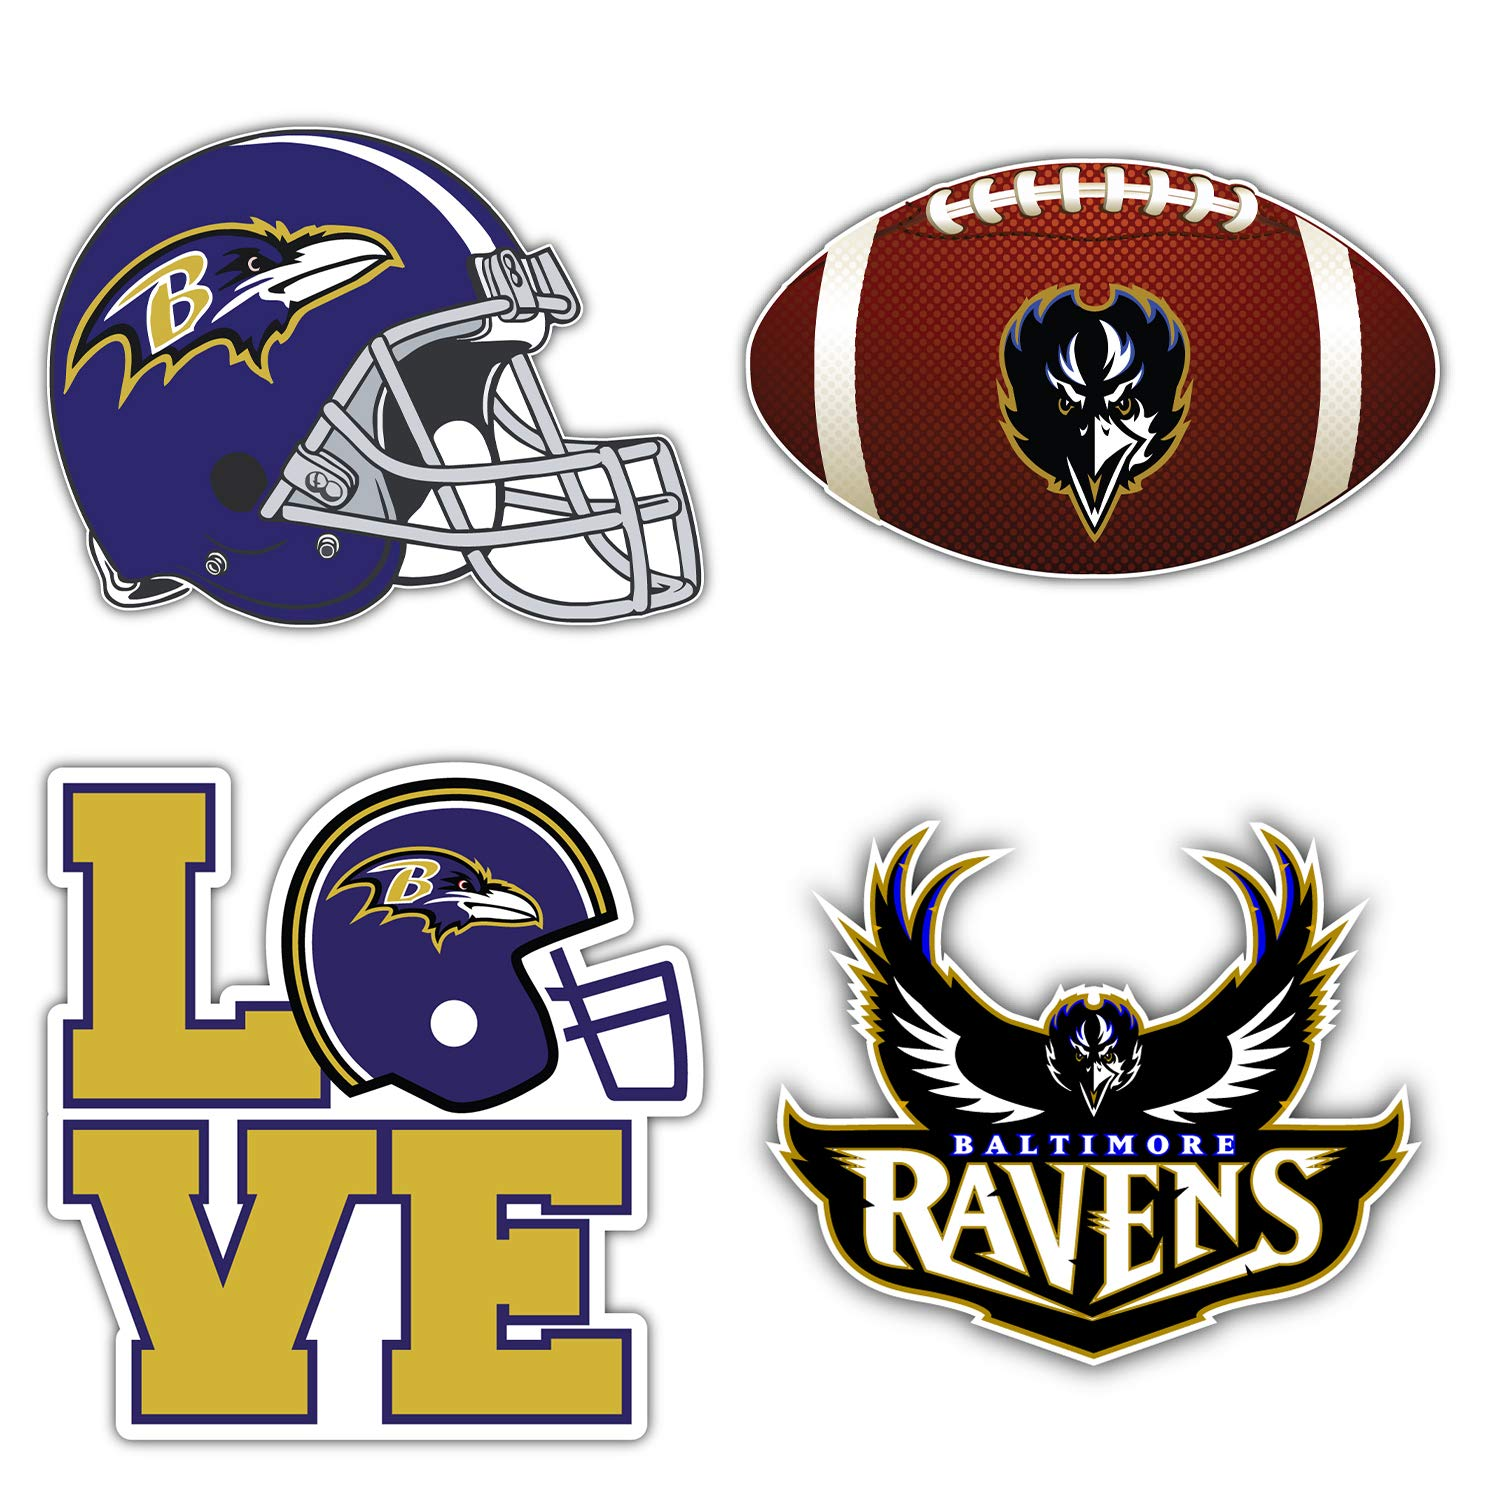 qualityprint Baltimore Ravens Set of 4 NFL Football Car Bumper Stickers Decals 5 Longer Side